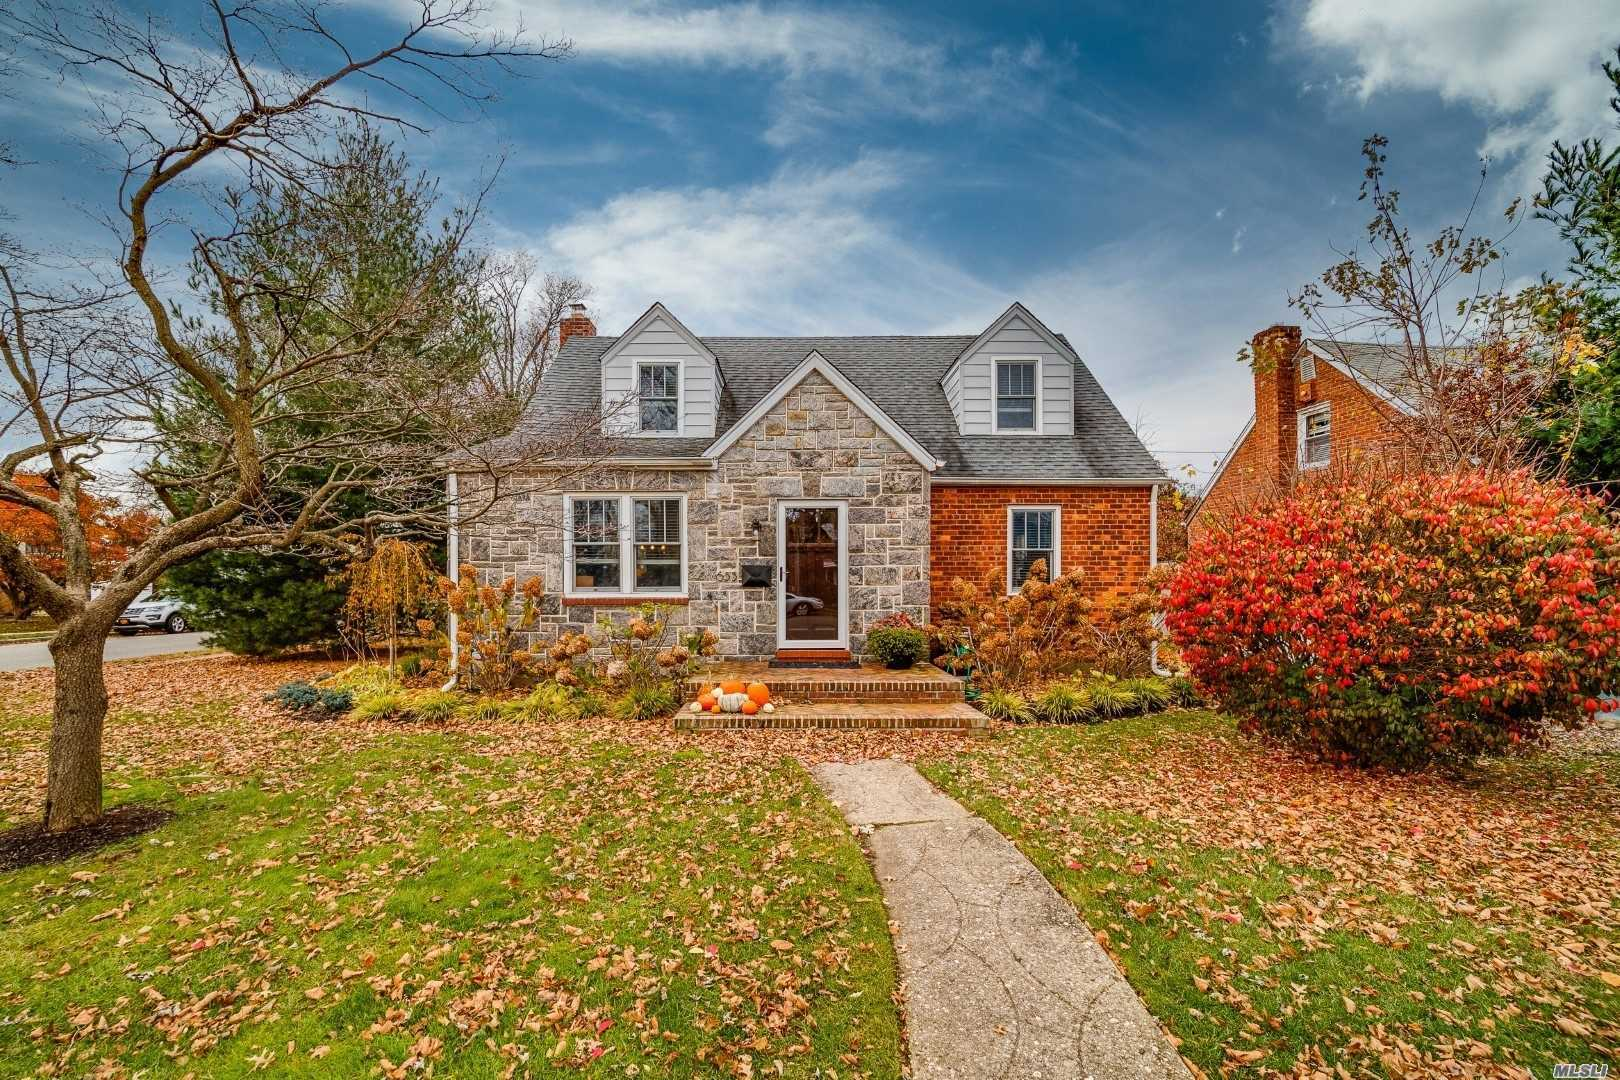 Drop Dead Stunning Home, Gut Renovated In 2016. Fabulous Moldings, Designer Kitchen With High End Finishes, And Quartz/Granite Countertops. Amazing Built-In-Closets, Custom Hardware And Solid Wood Doors. Brand New Bathrooms, Burner, Cac, Hot Water Heater, Windows, Electrical And Plumbing. Must See To Be Believed!!!